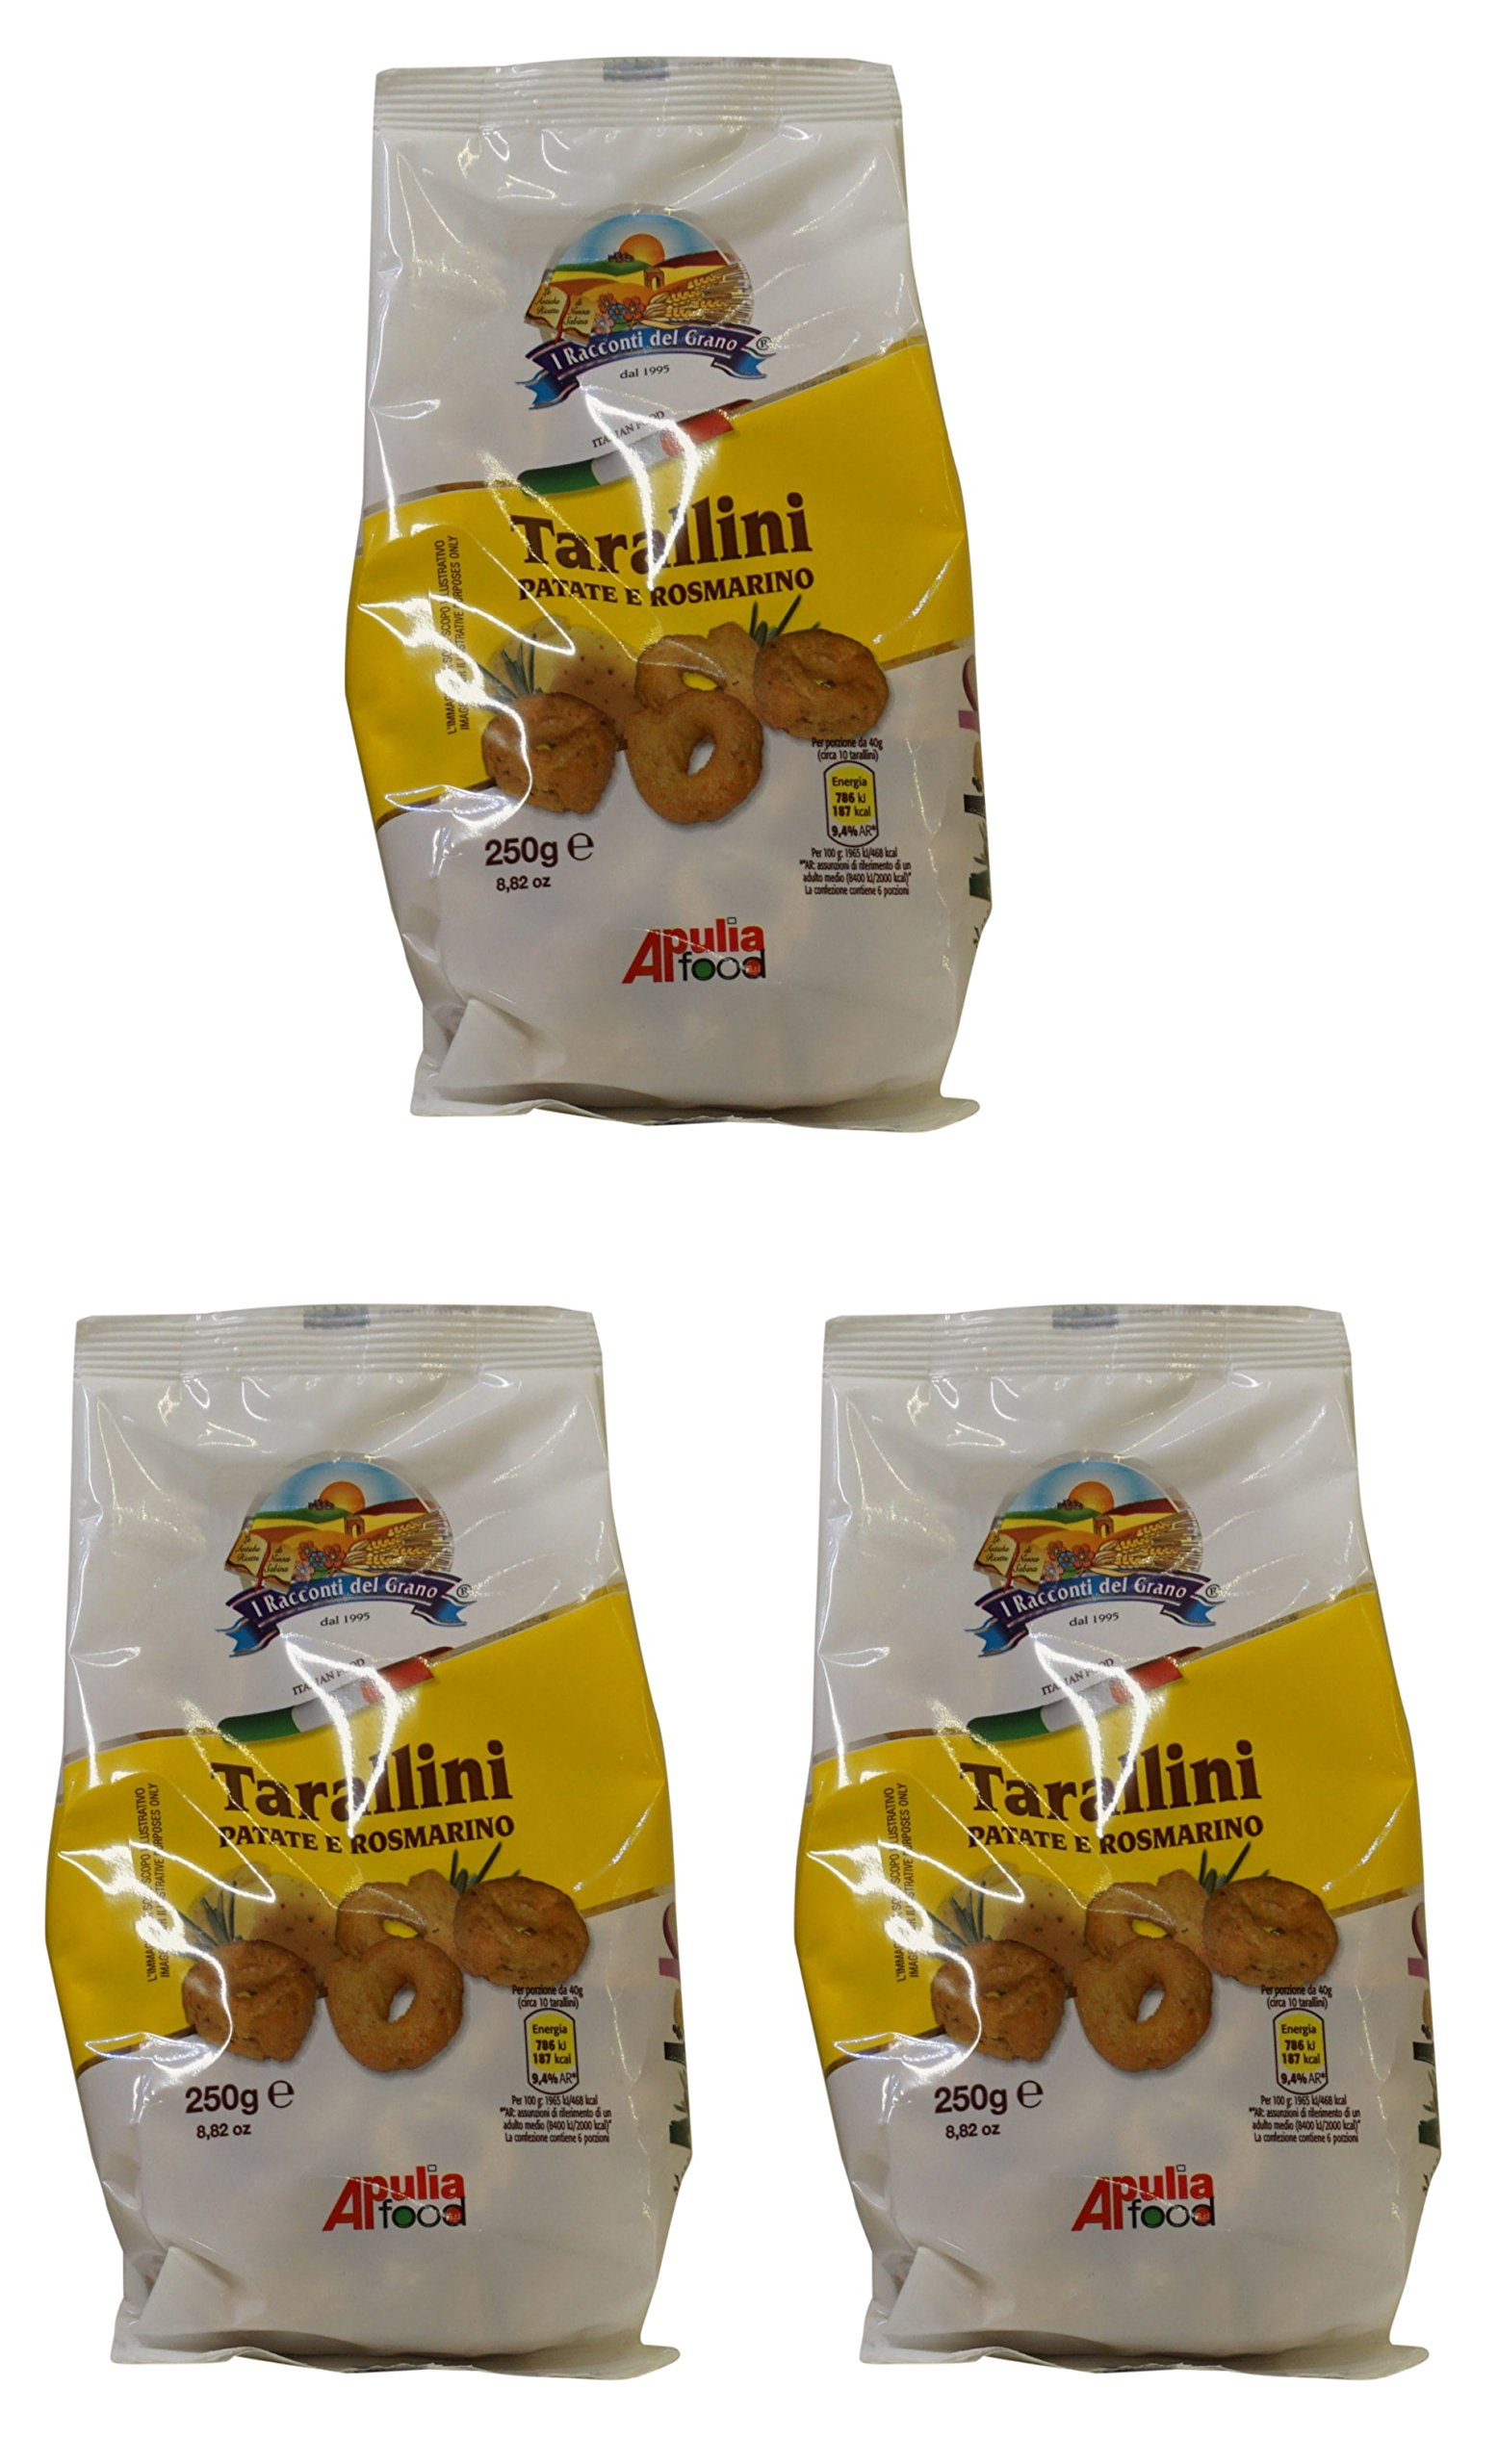 I Racconti del Grano:''Tarallini Patate e Rosmarino'' Italian Taralli, Potatoes and Rosemary Taste - 8.82 Ounces (250gr) Packages (Pack of 3) [ Italian Import ]